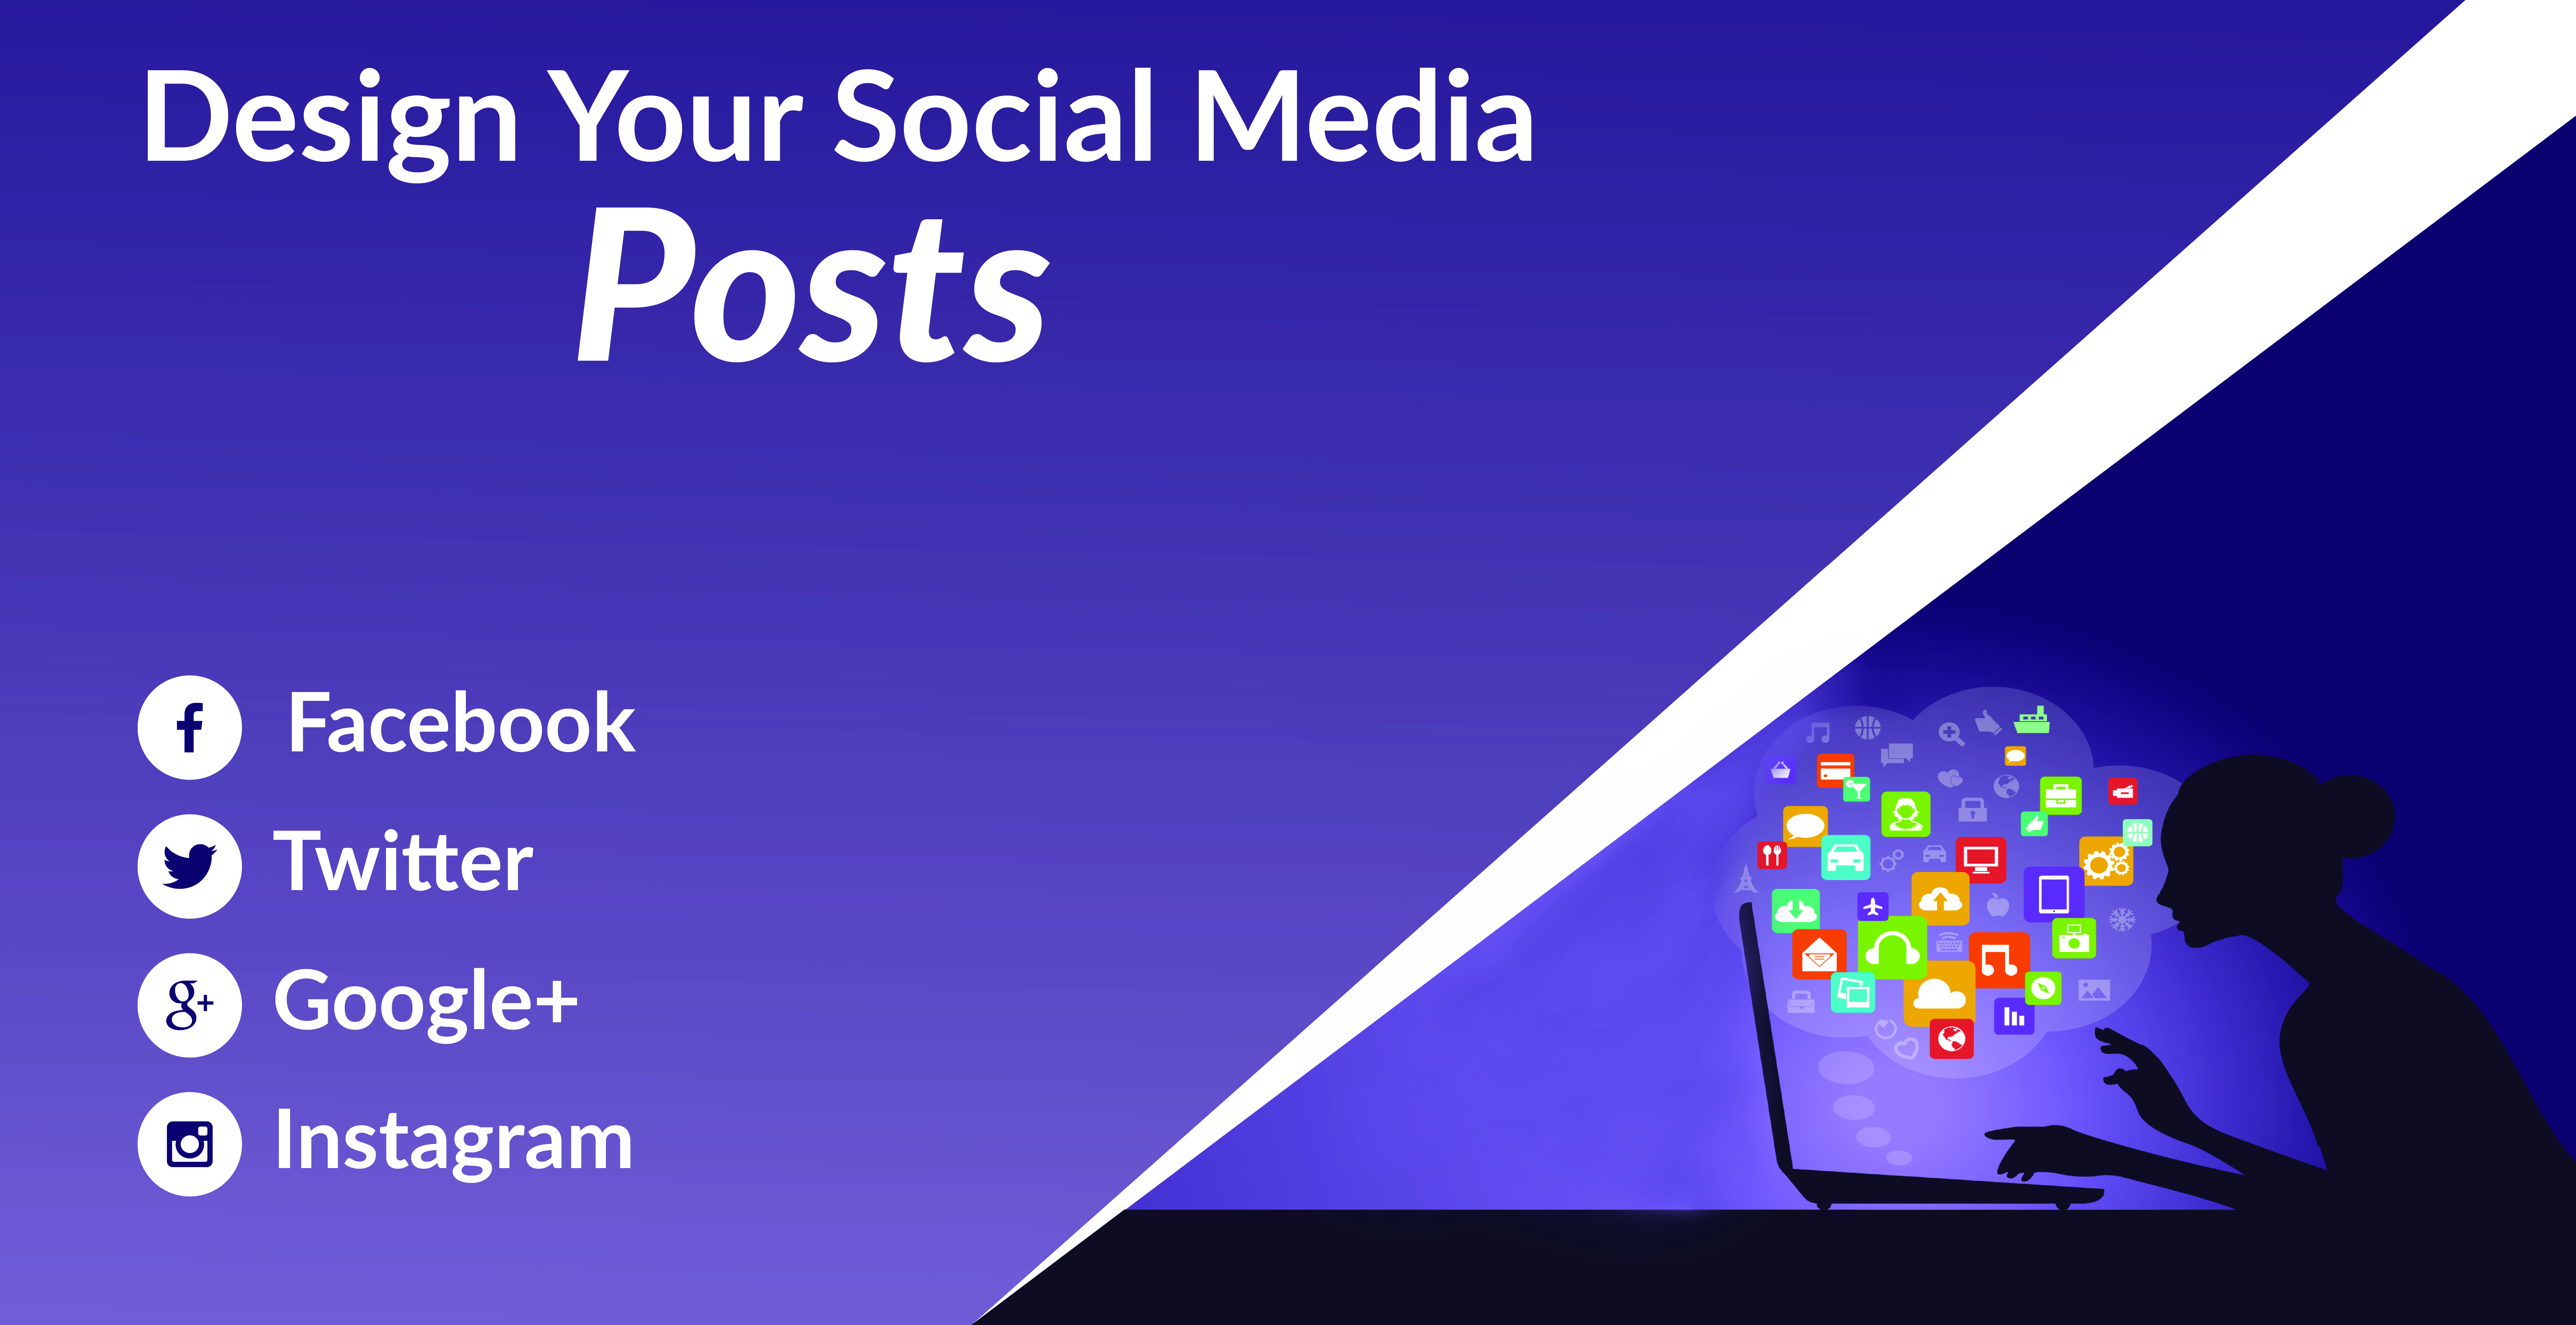 I will design a professional social media post for you